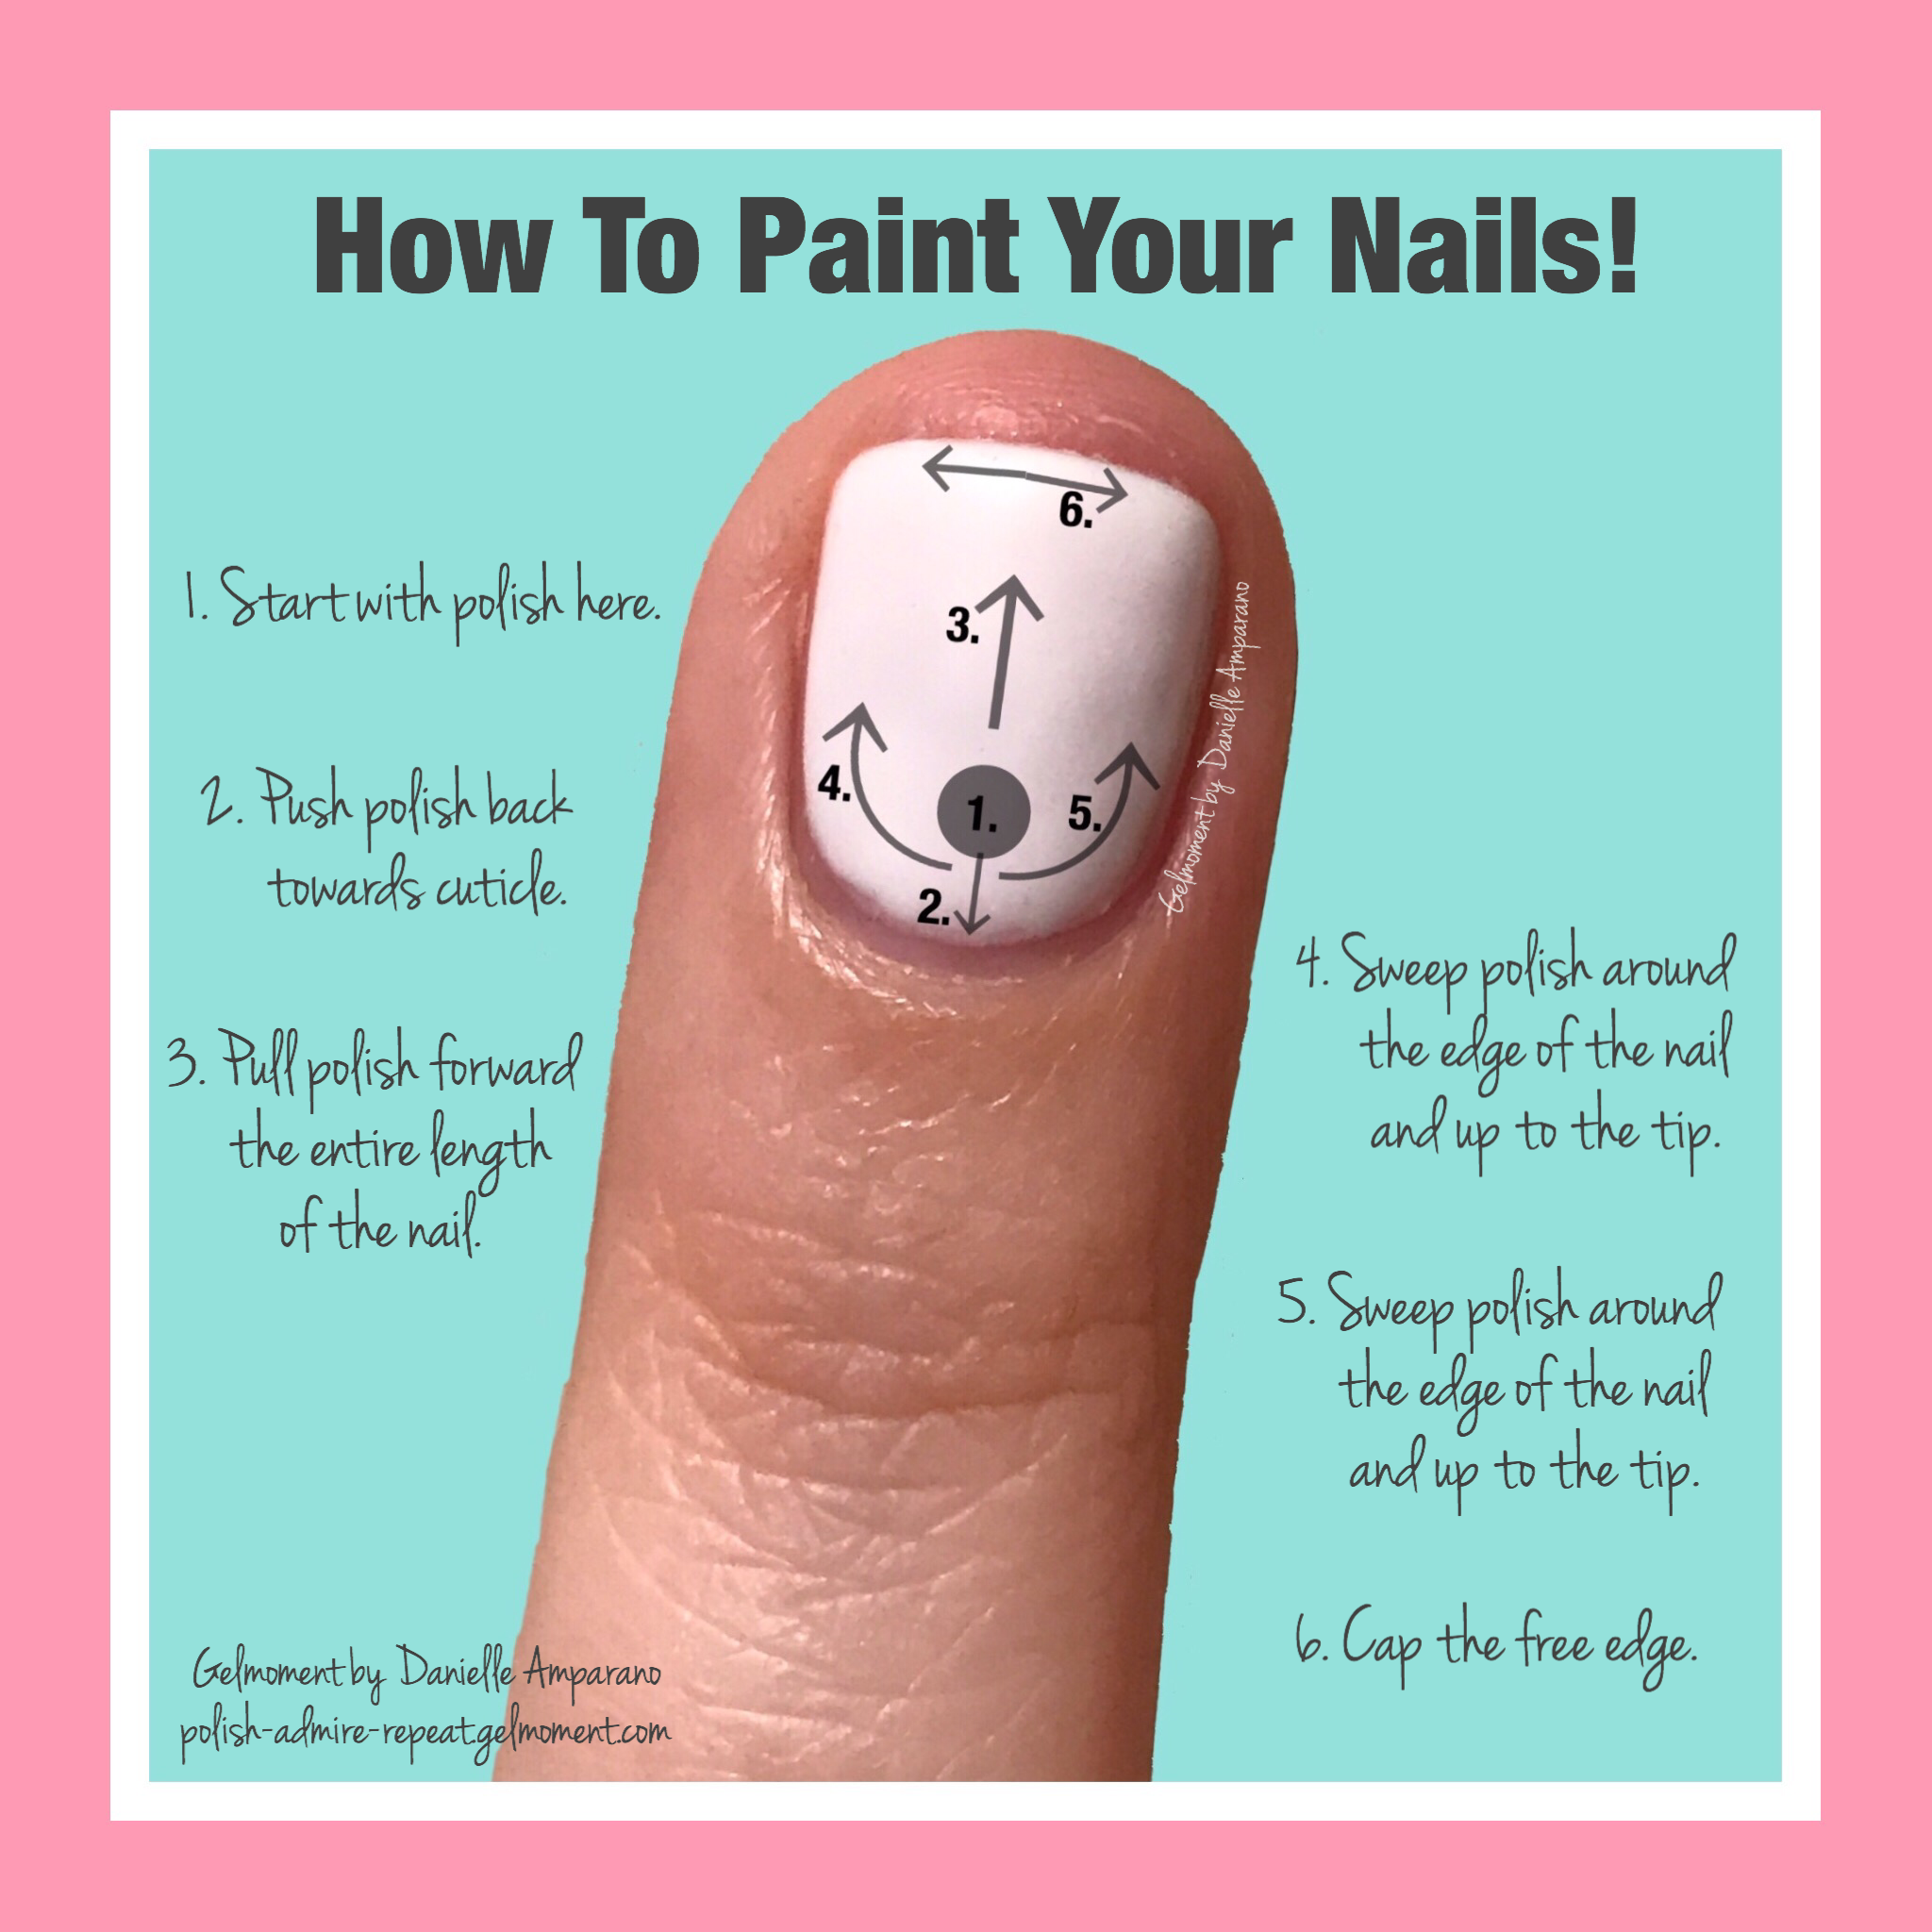 Here Is A Tip On How To Apply Your Gelmoment Gel Polish For A Flawless Application And A Long Lasting Manicur Diy Gel Manicure Gel Manicure Diy How To Do Nails